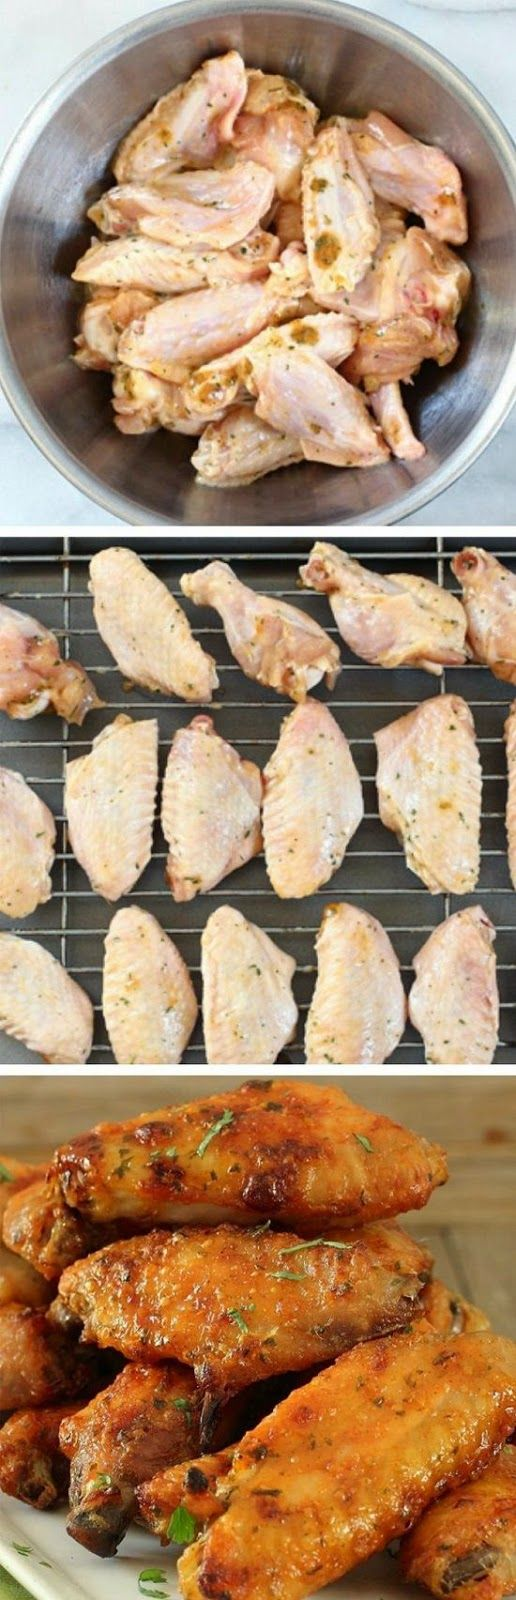 Fork Wing  Wings  Wings Chicken Call Dinner Stunning Baked Recipes   Recipe a   corner  Stick ring Baked Wing It Chicken and pt     Recipes It and     Chicken in